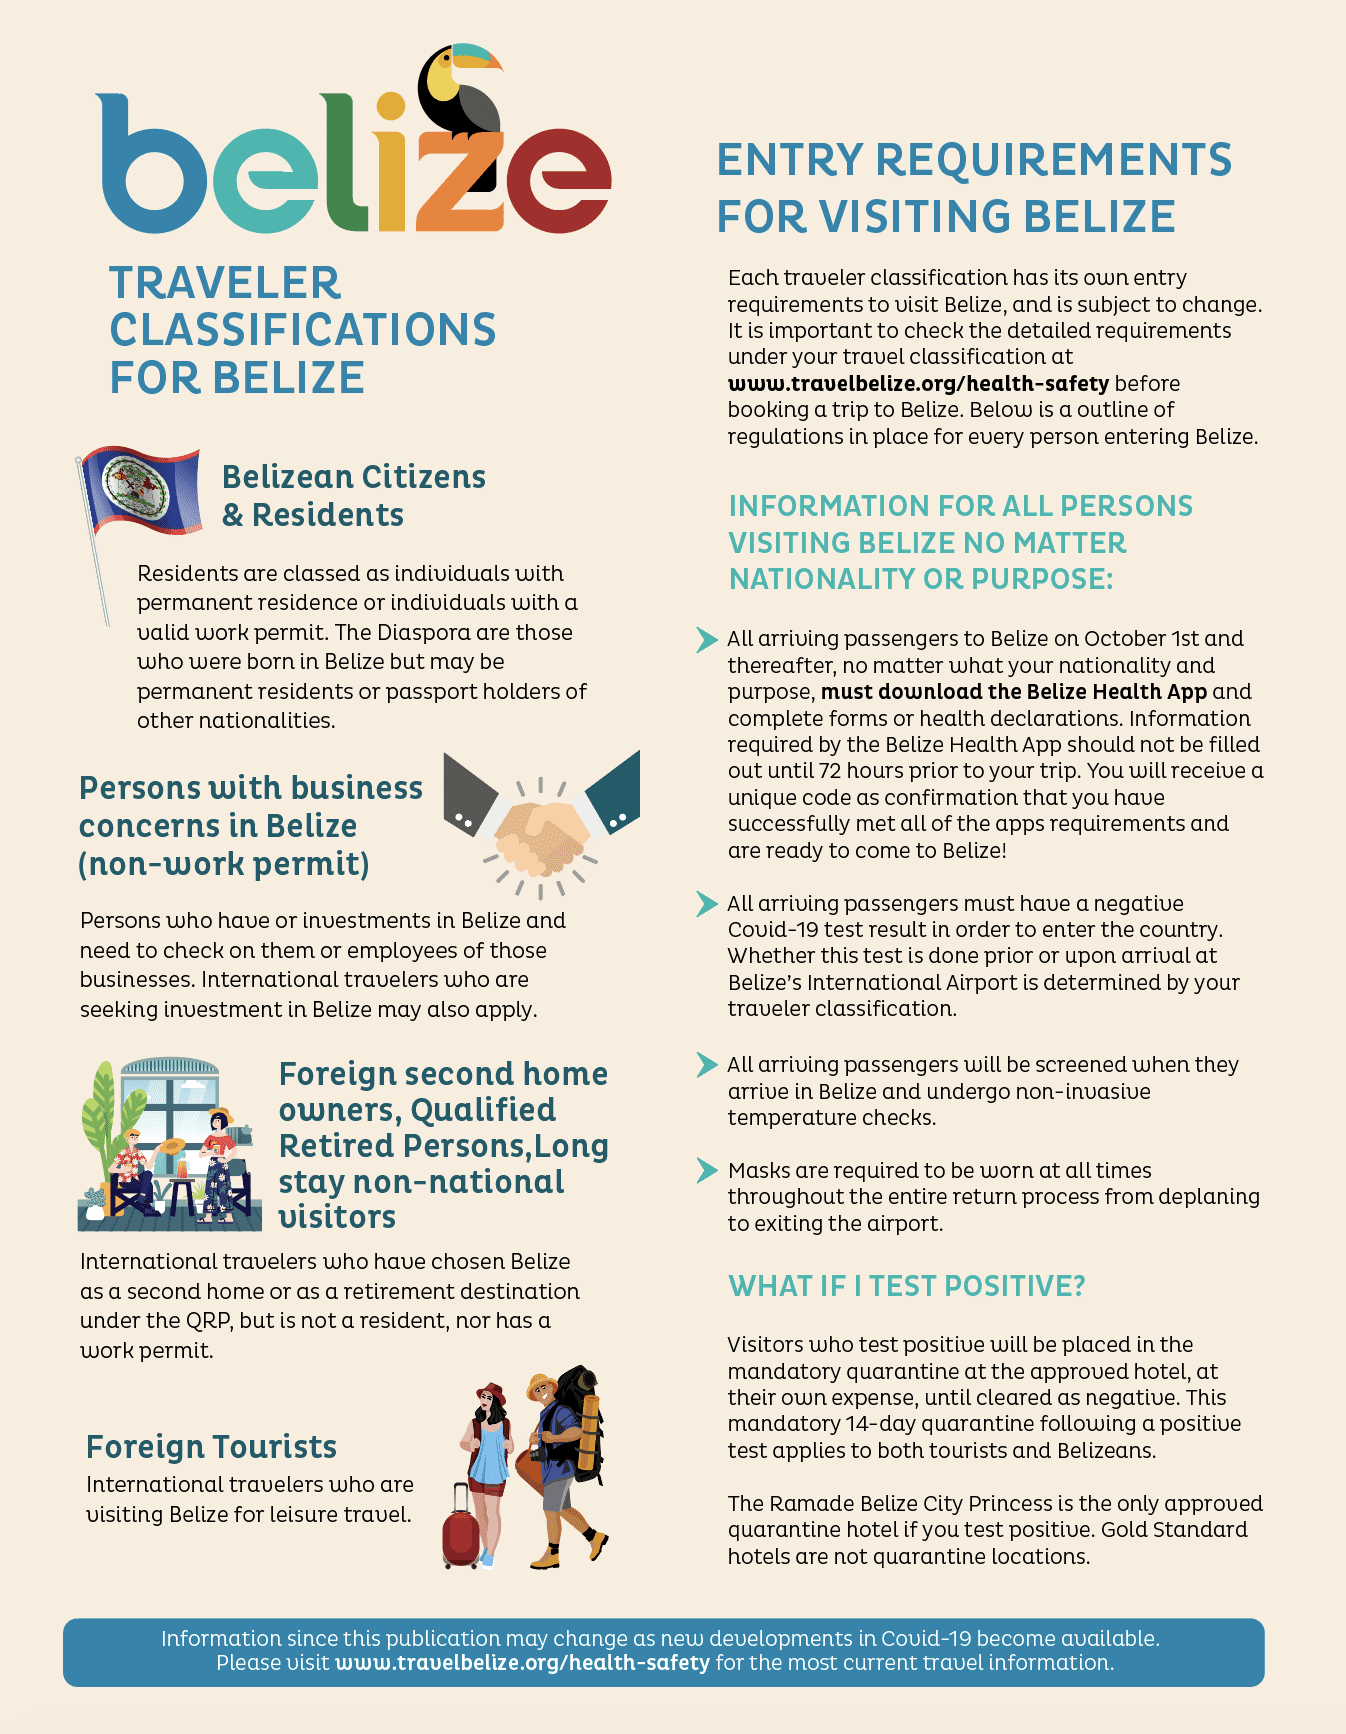 belize-entry-requirements